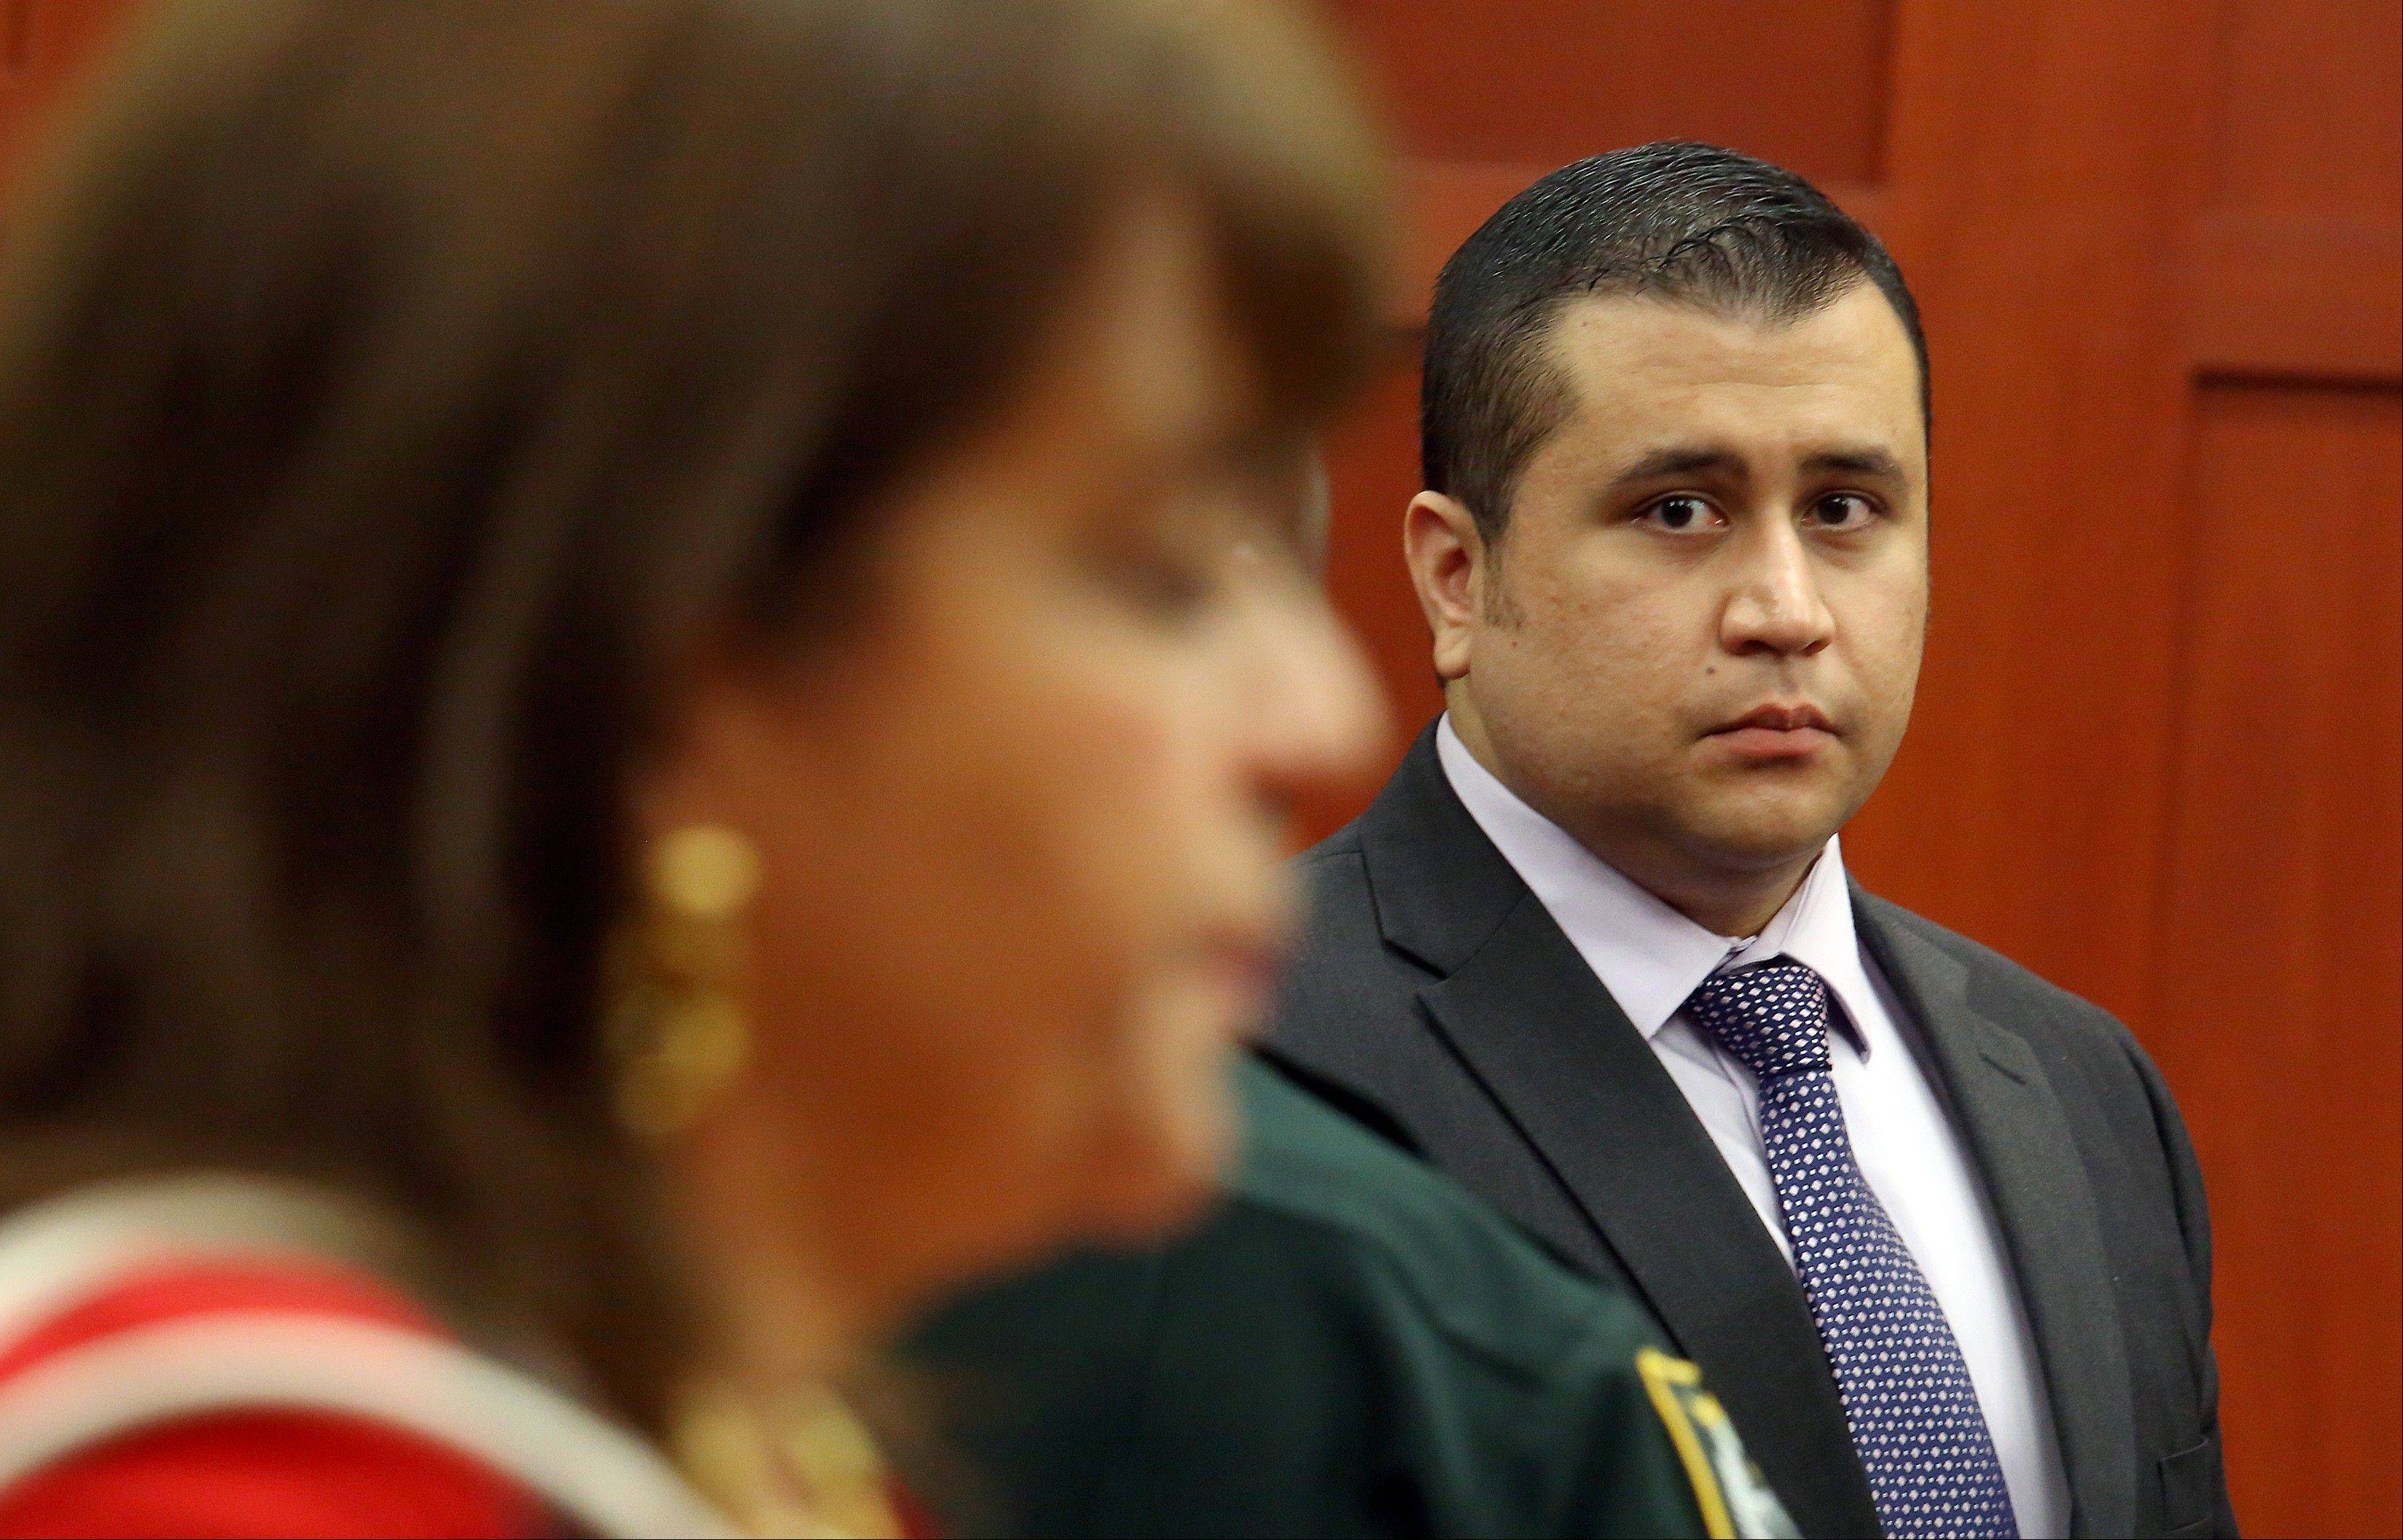 George Zimmerman looks at State Attorney Angela Corey, during a recess in his trial at the Seminole circuit court, in Sanford, Fla., Wednesday, July 3, 2013. Zimmerman is charged with second-degree murder in the fatal shooting of Trayvon Martin, an unarmed teen, in 2012.